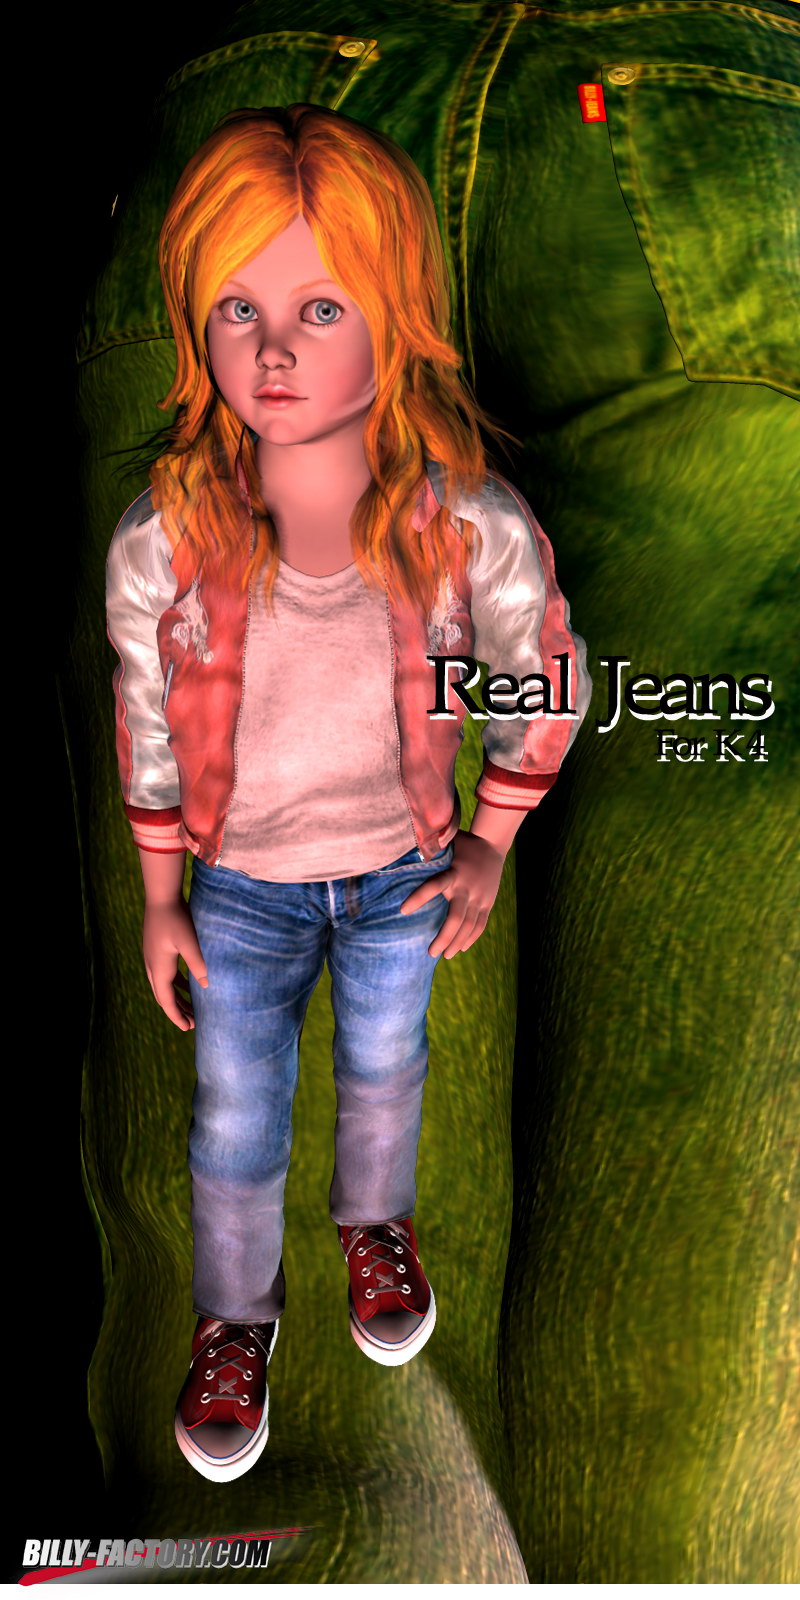 K4 Real Jeans